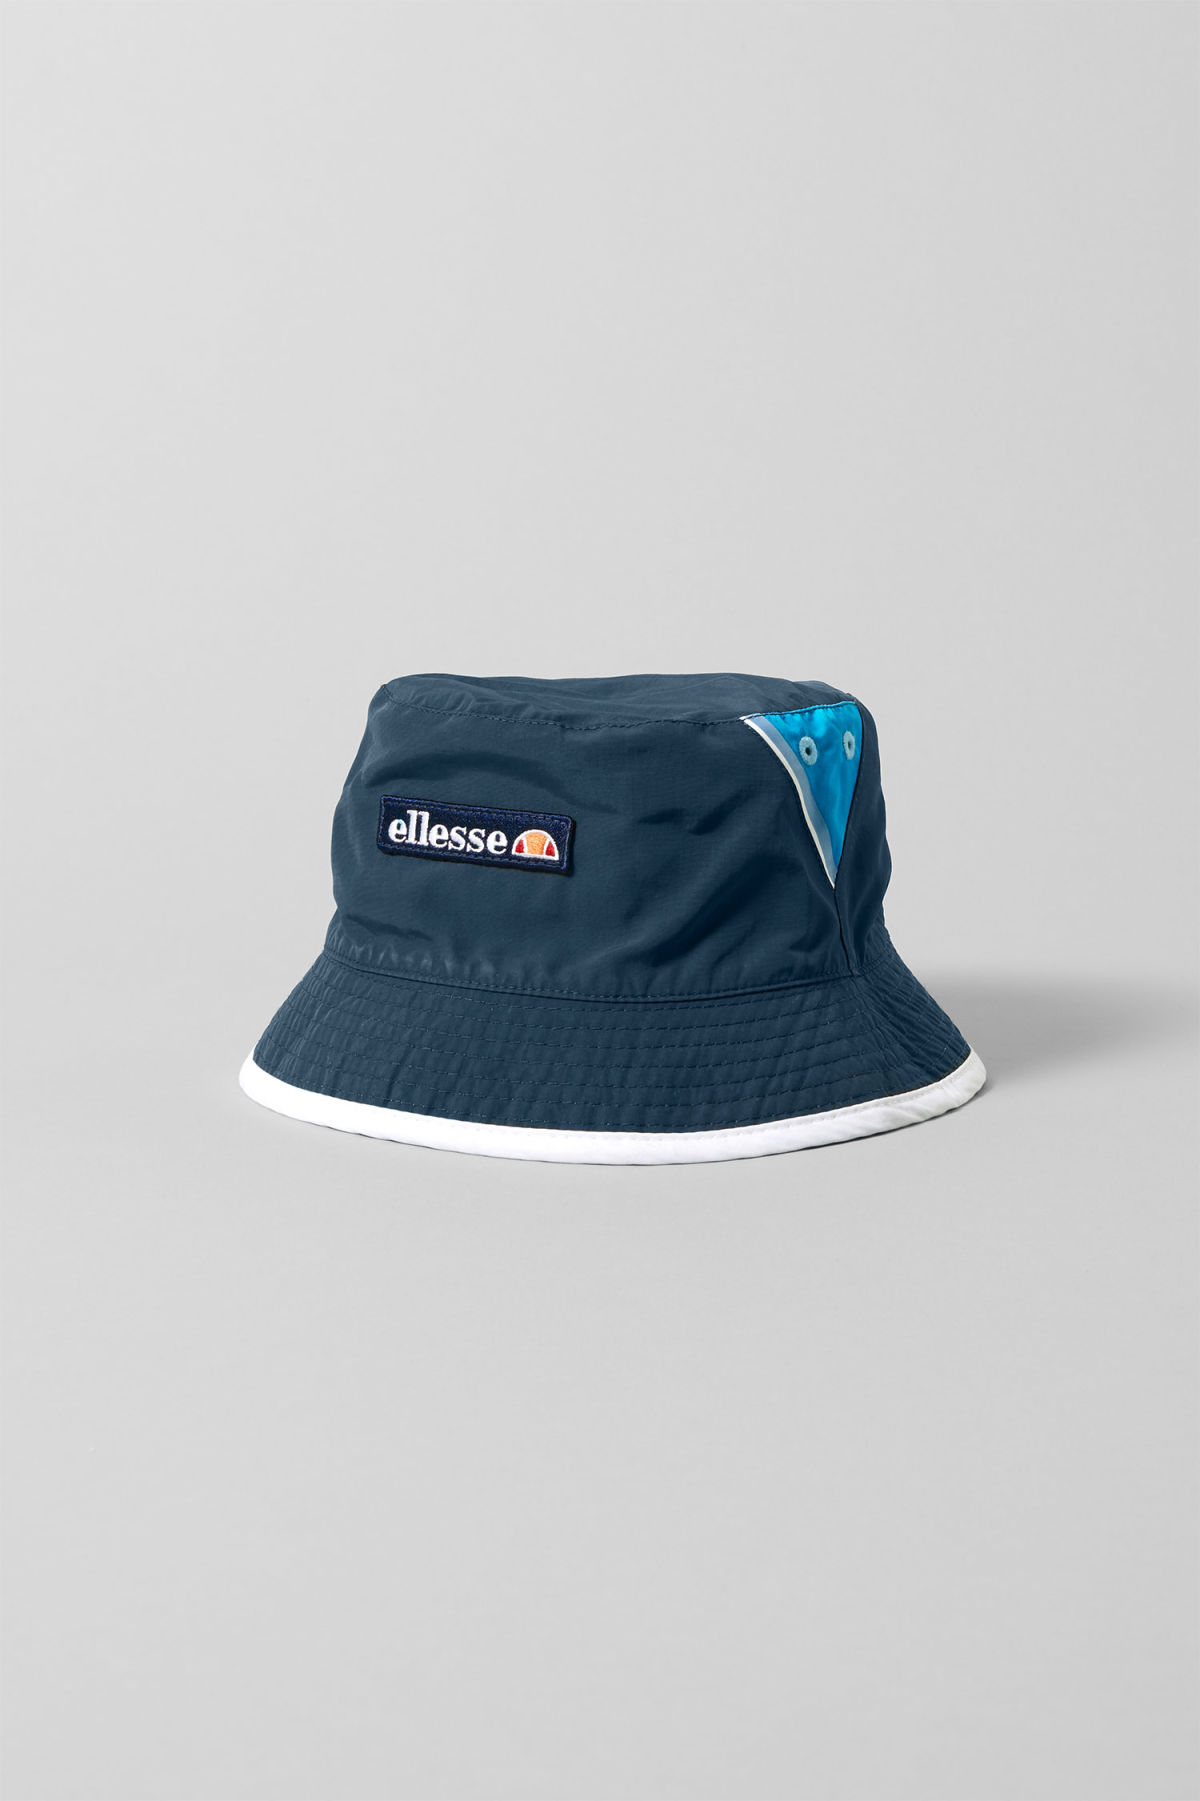 men's bucket hats